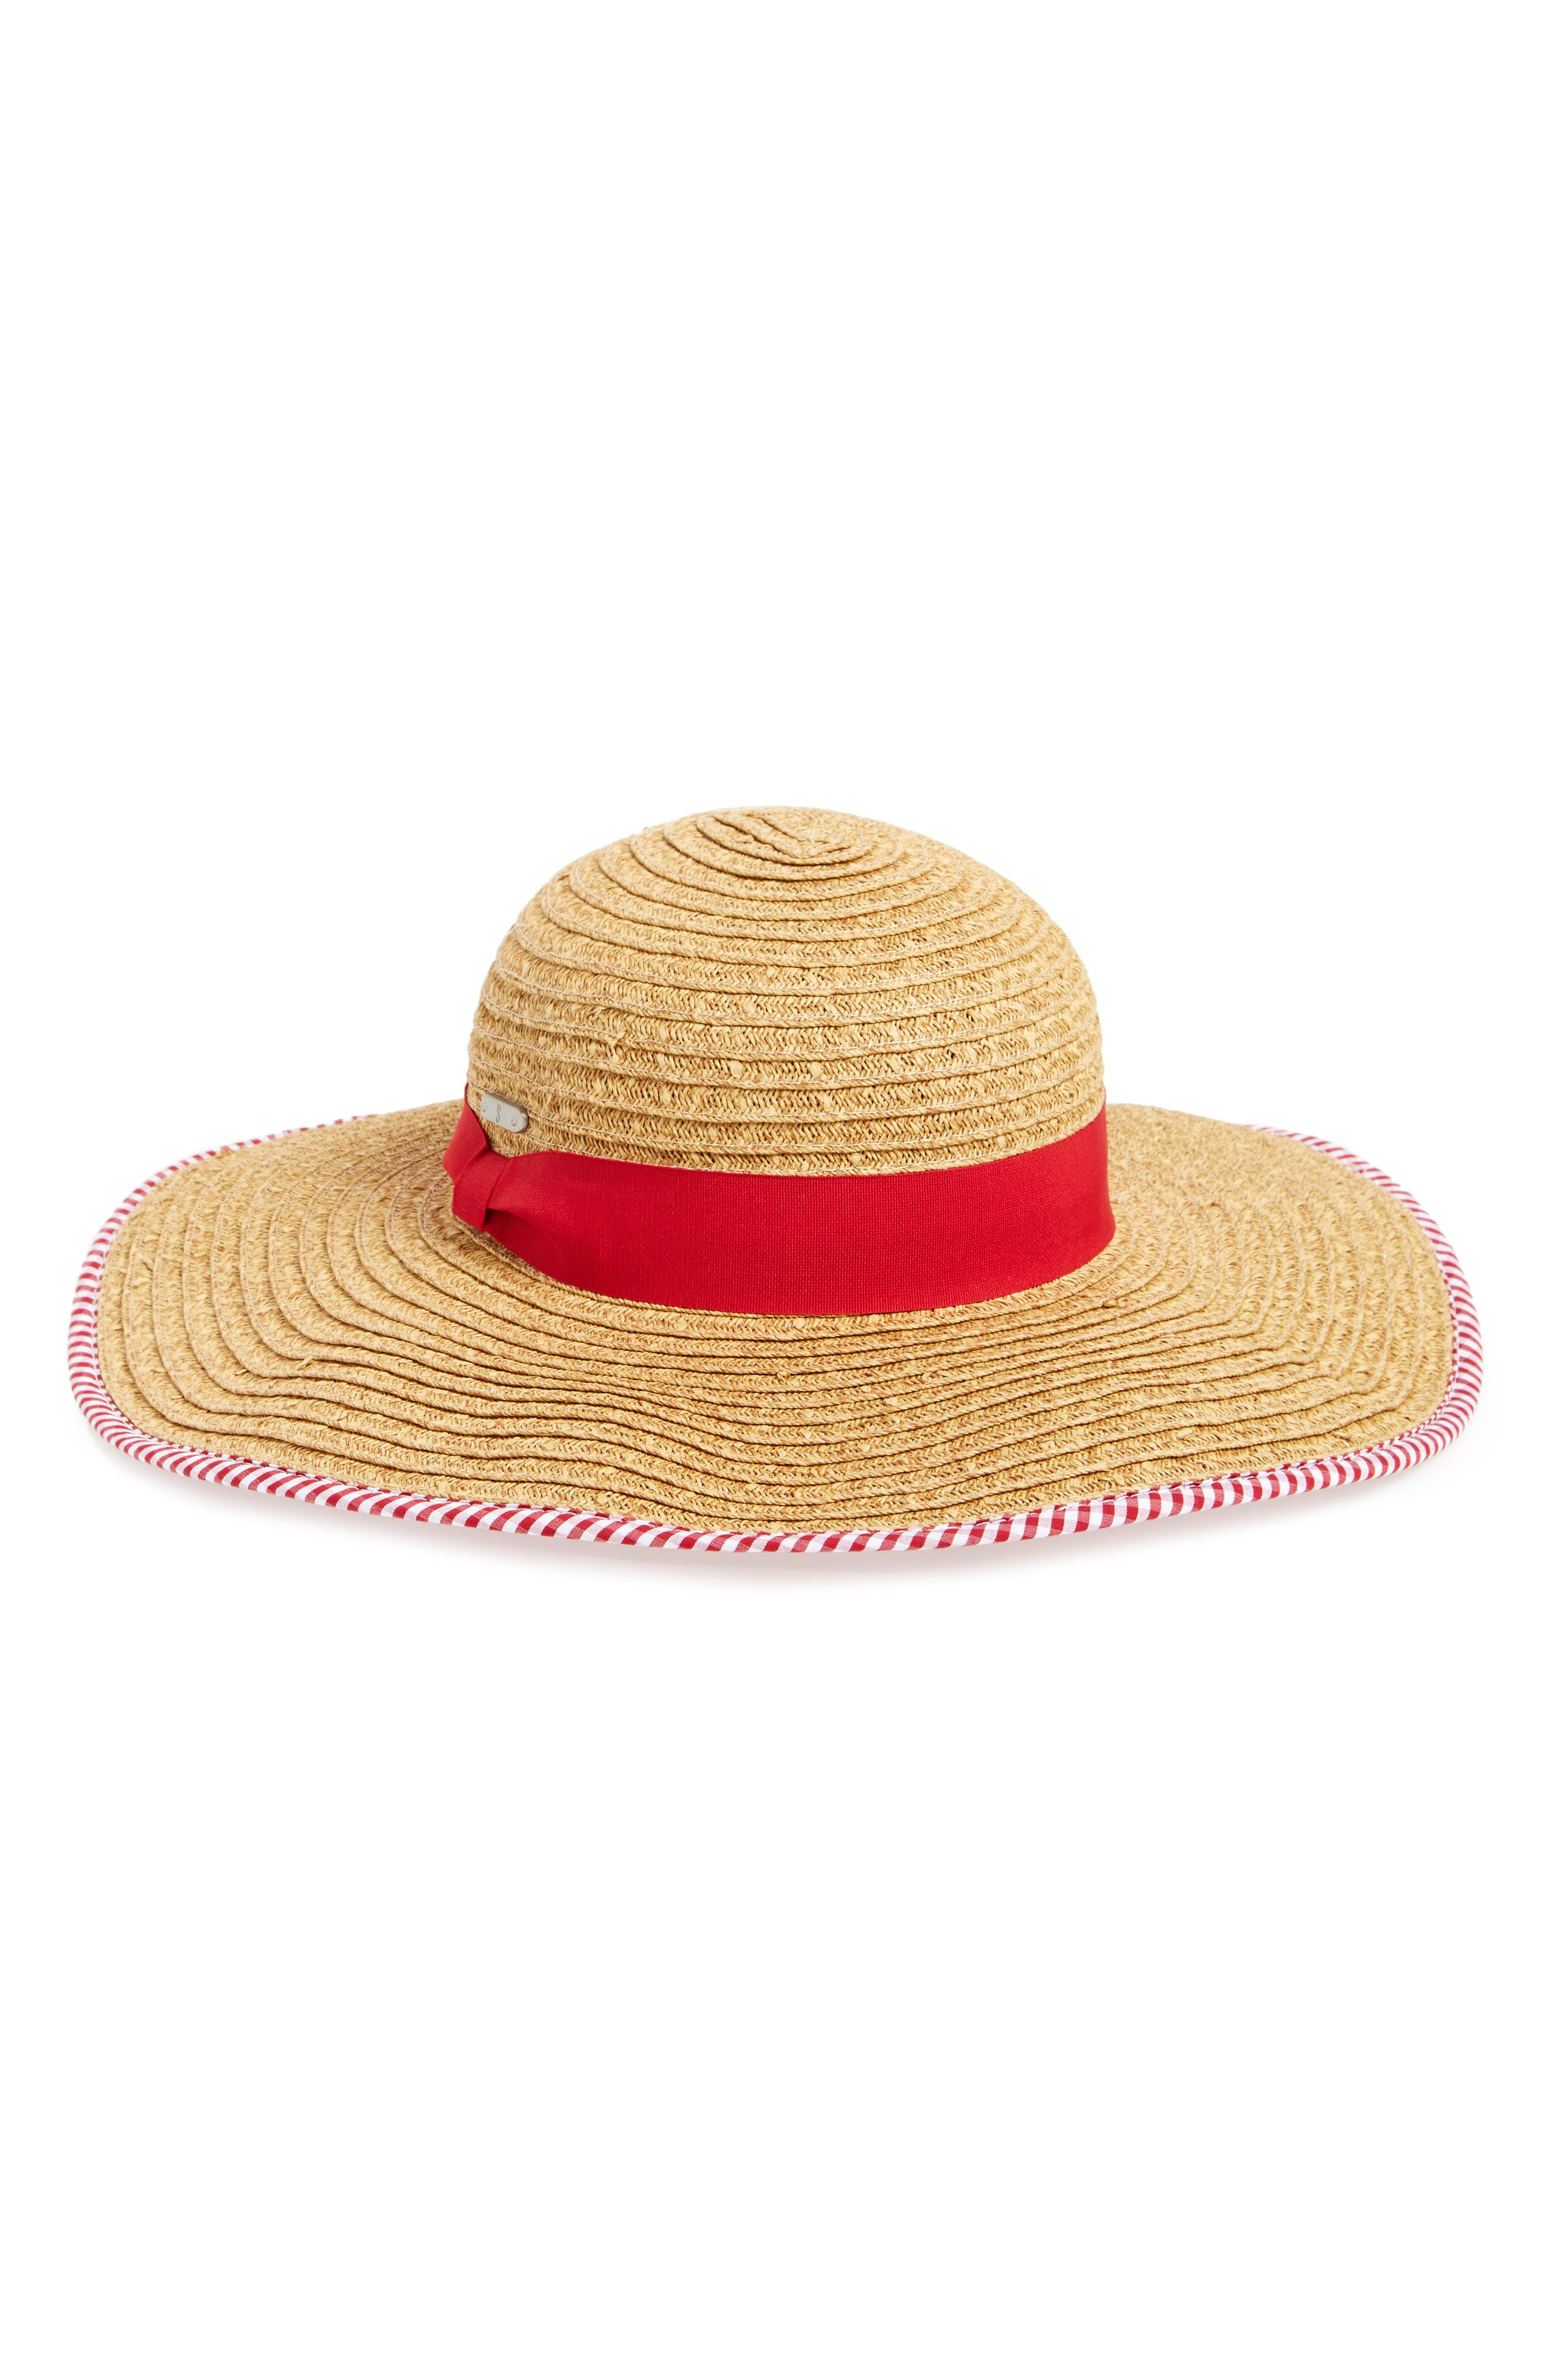 Floppy Straw Hat,                             Main thumbnail 1, color,                             Red